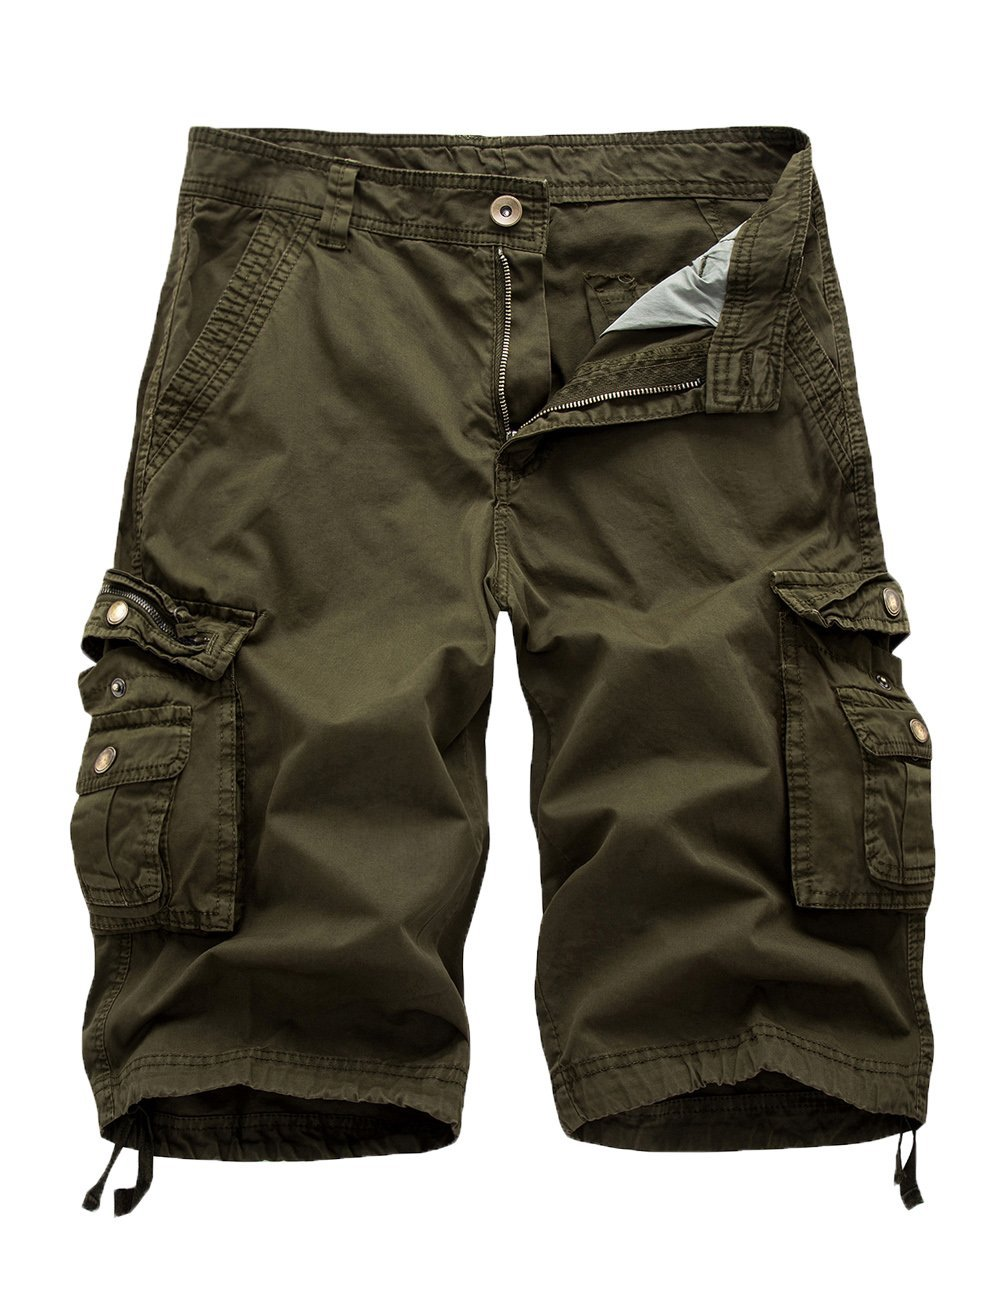 FOURSTEEDS Womens Casual Loose Fit Multi-Pockets Camouflage Twill Bermuda Cargo Shorts Green US 12